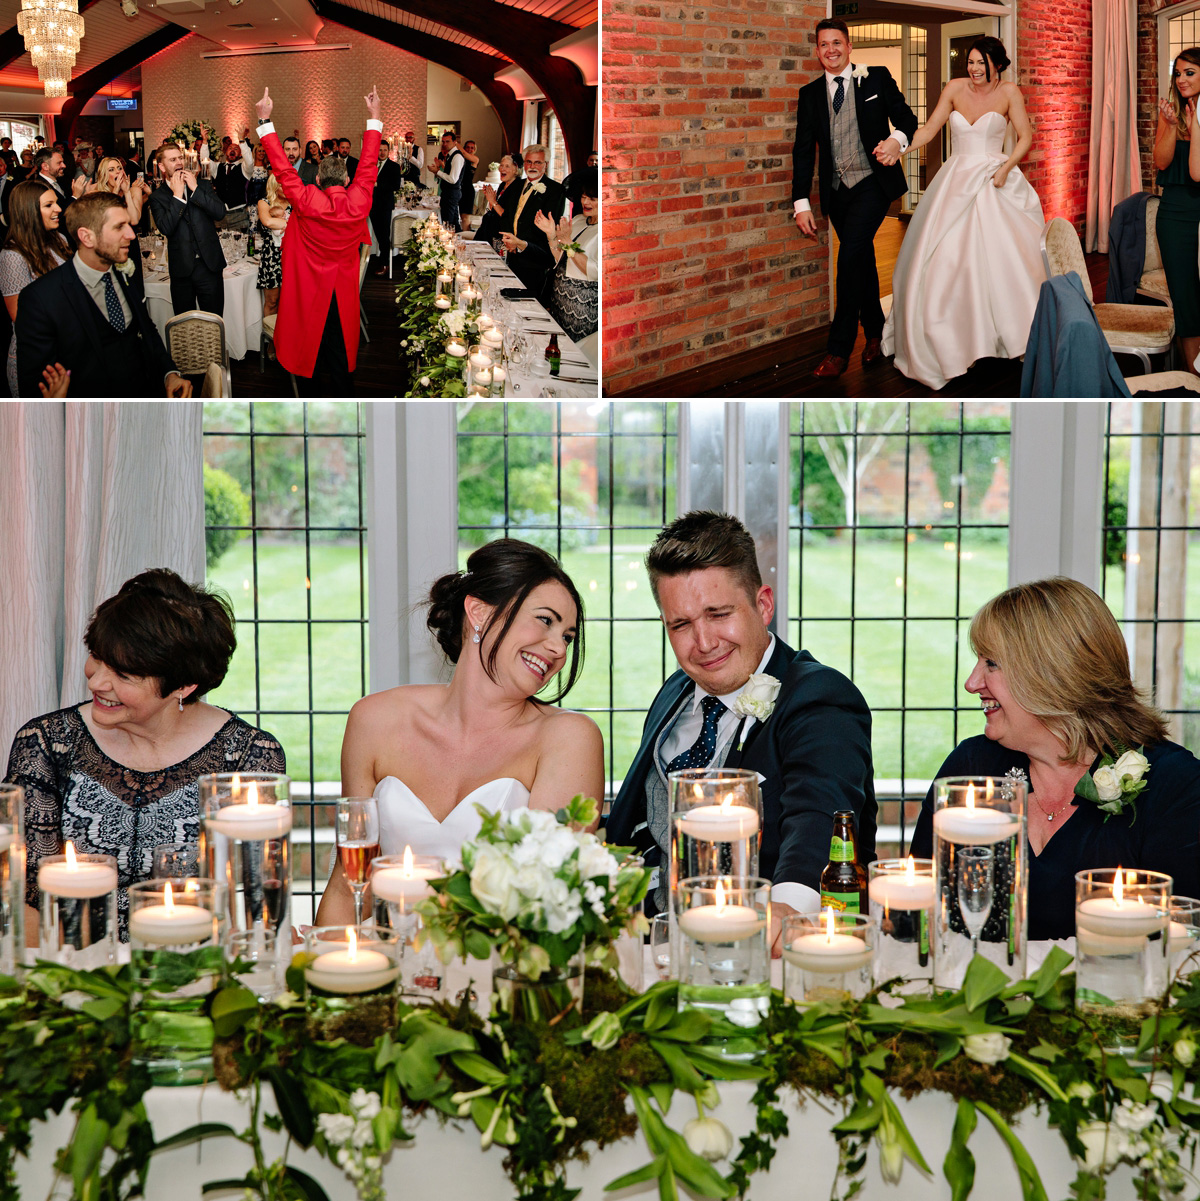 Wedding guests cheer loudly as the Bride and Groom are announced into their wedding breakfast